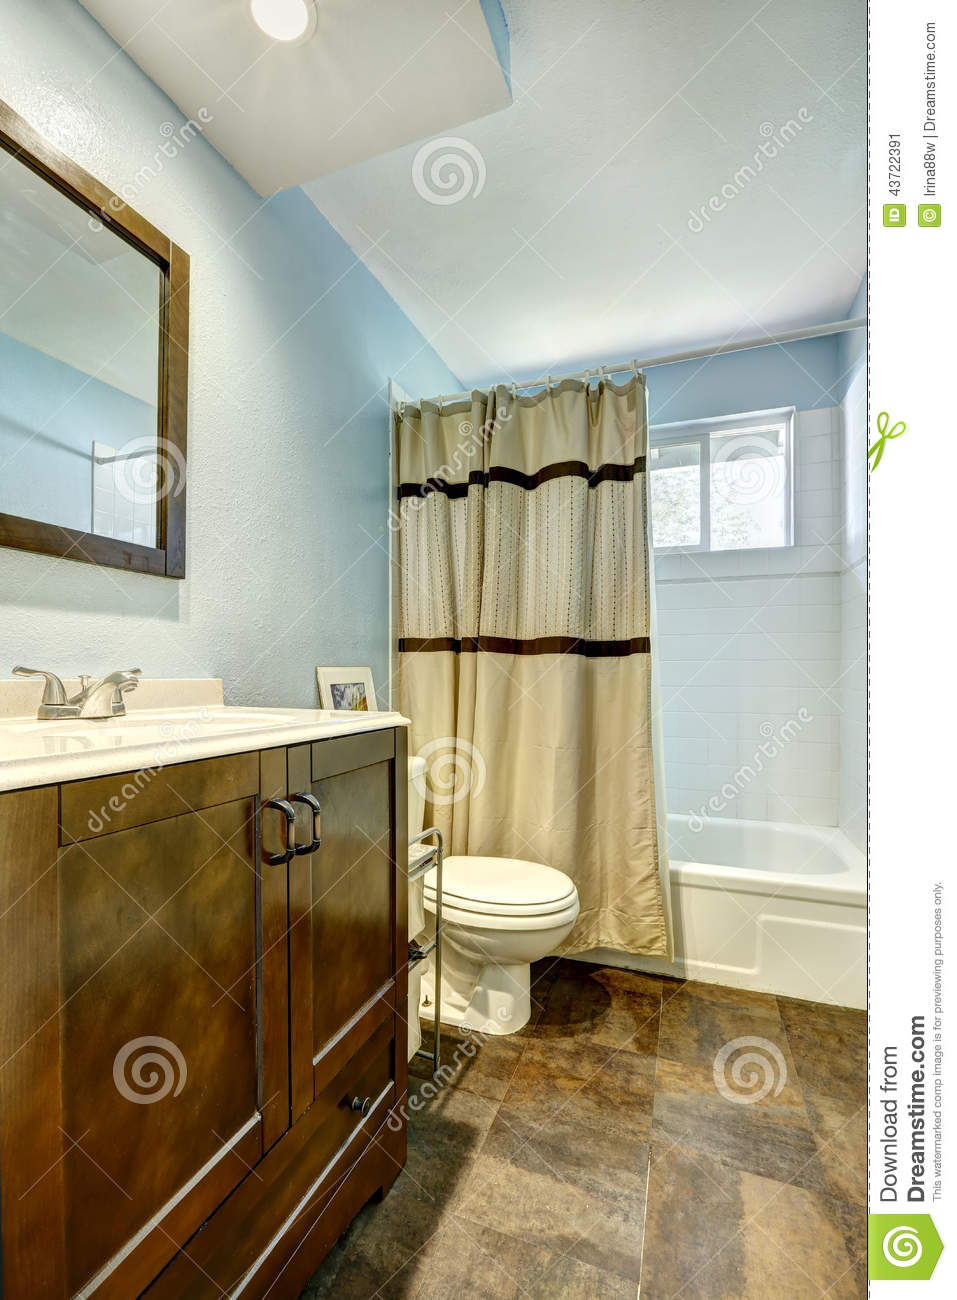 bathroom with brown tile floor and light blue walls stock On brown and blue bathroom tiles